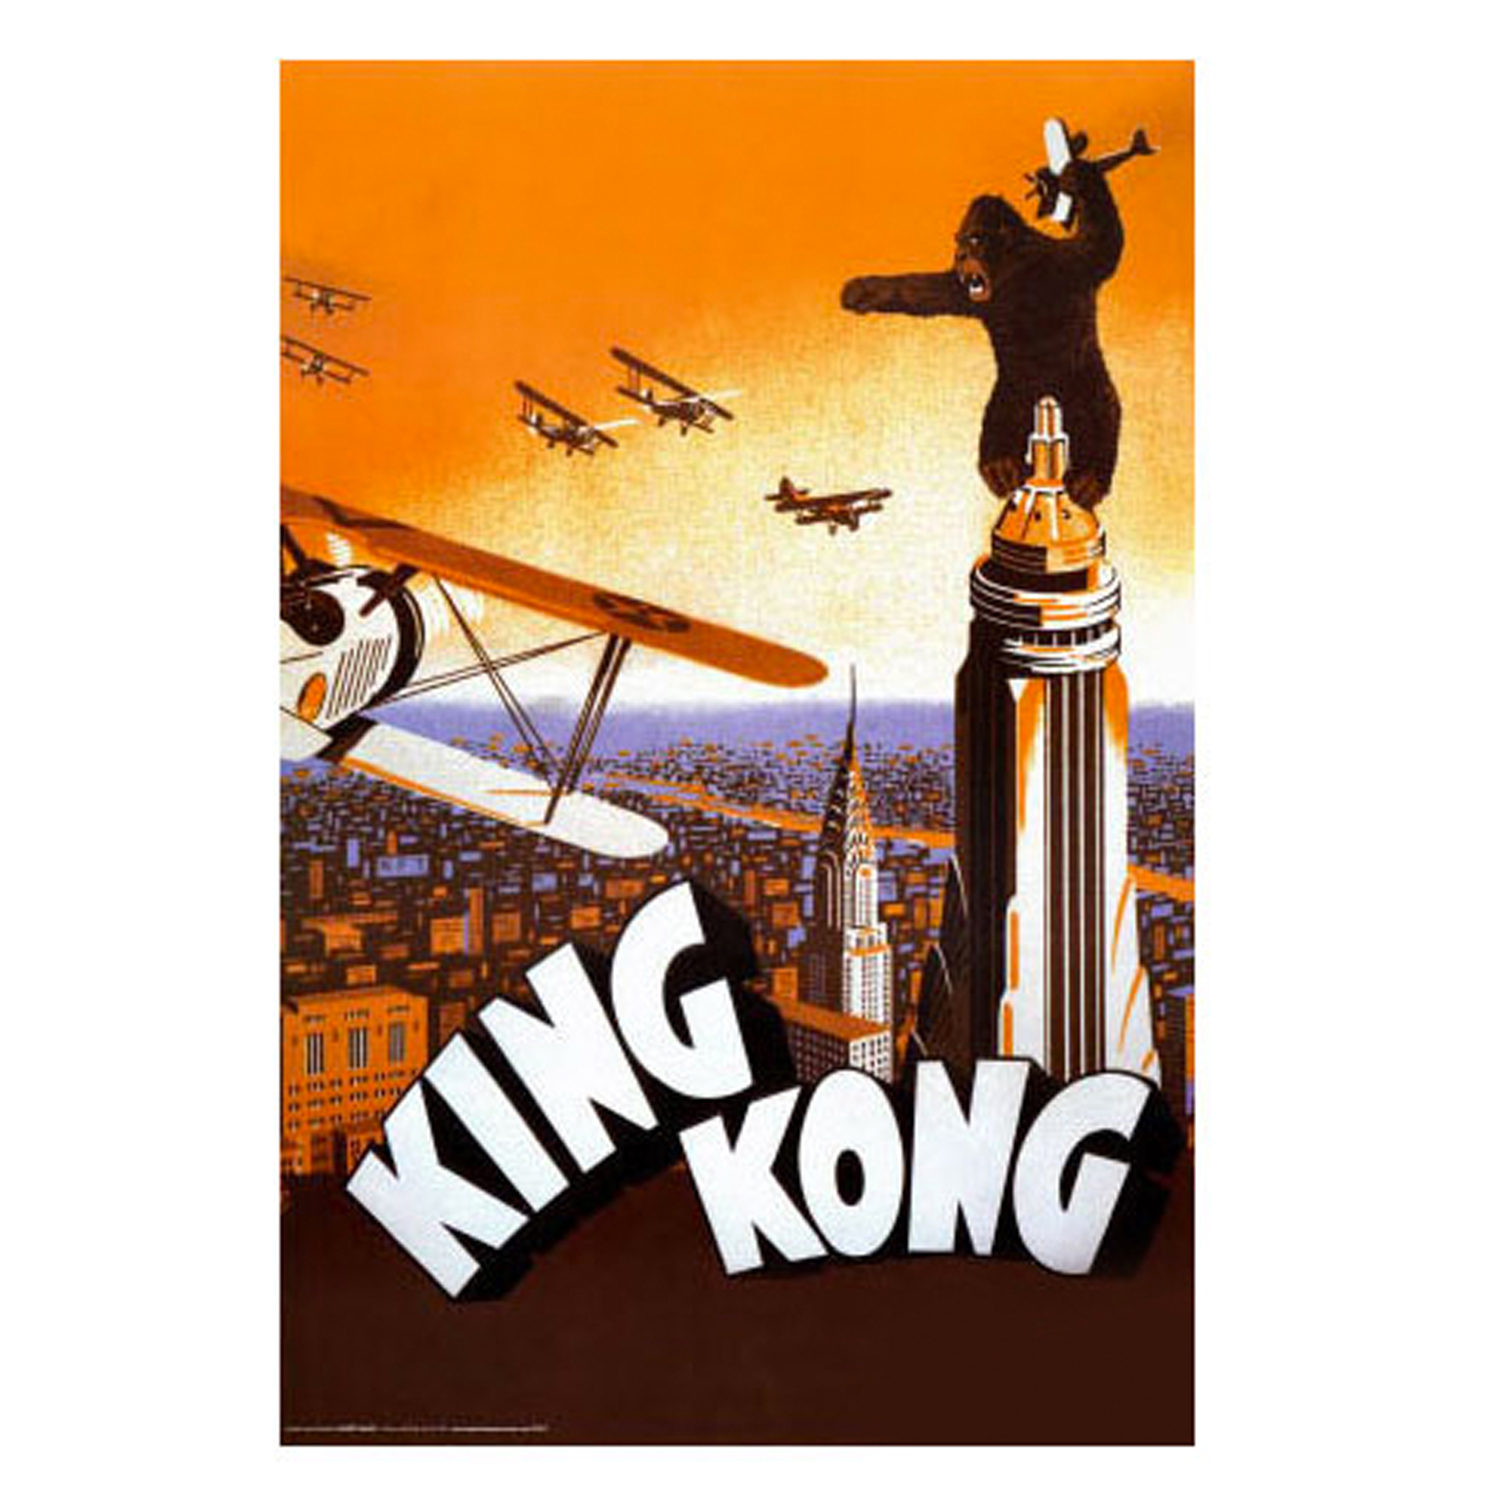 Original 1933 King Kong poster that inspired the painting